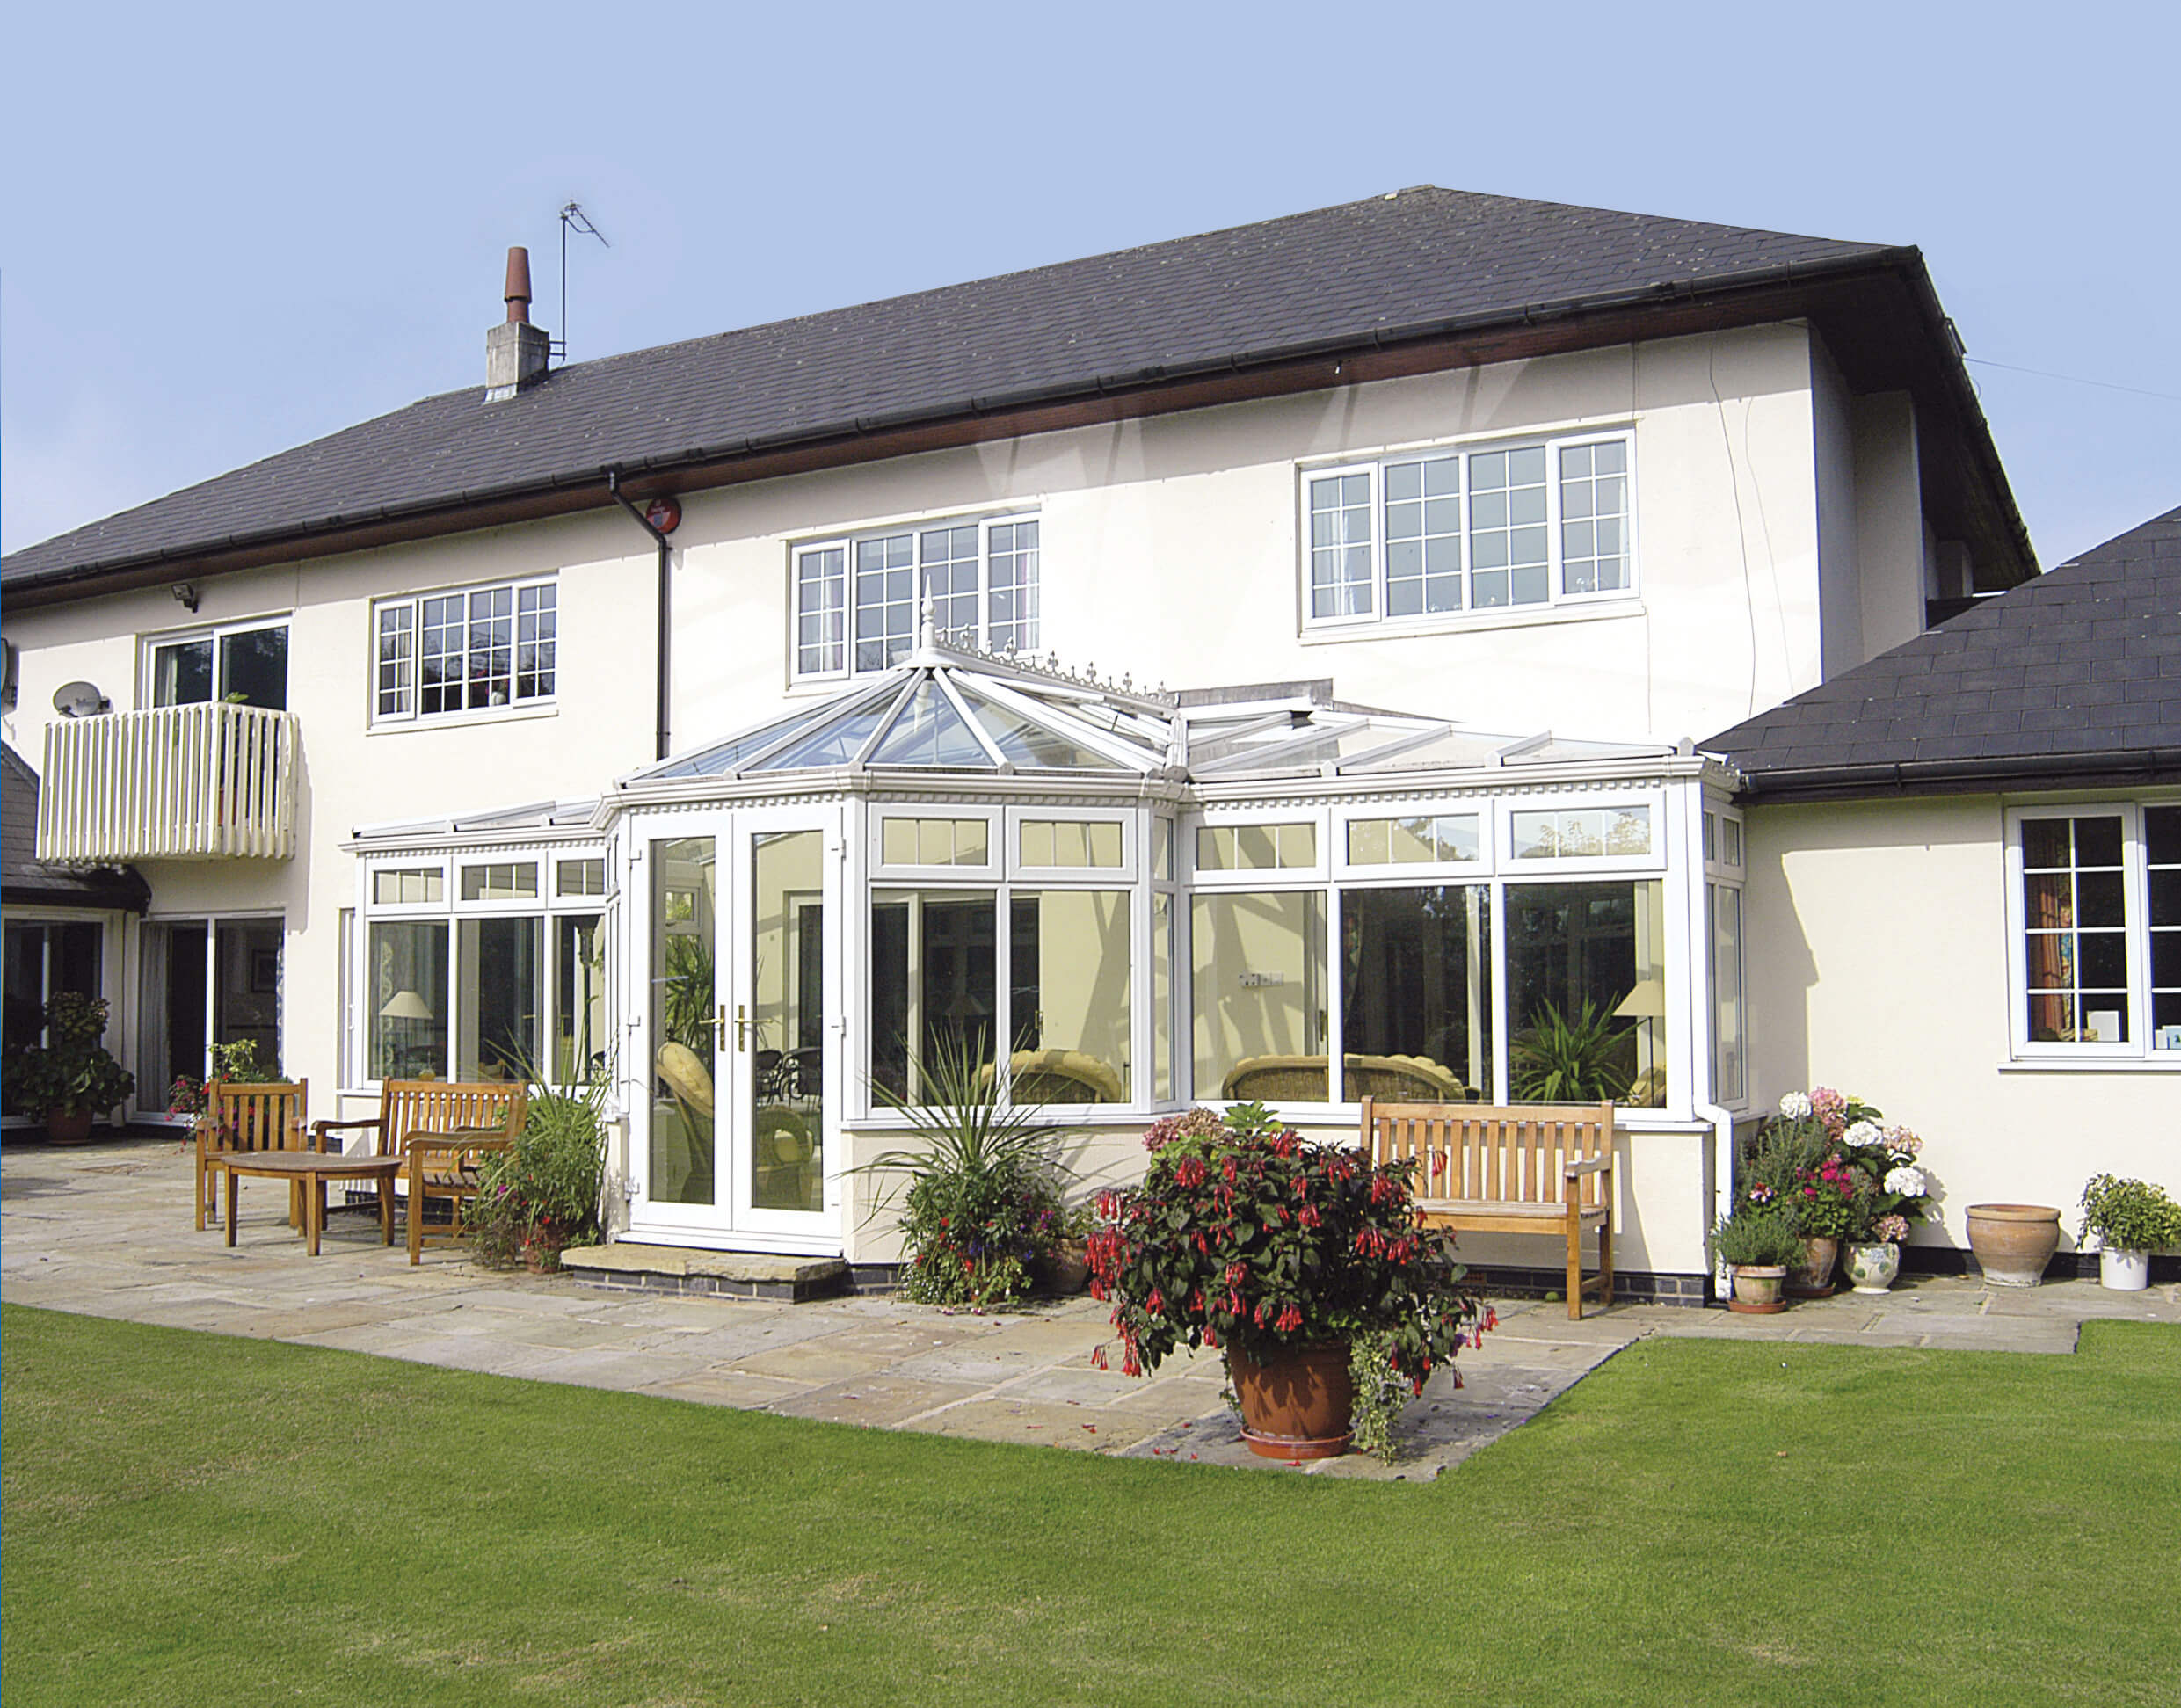 https://www.capitalupvc.co.uk/product-category/conservatories/